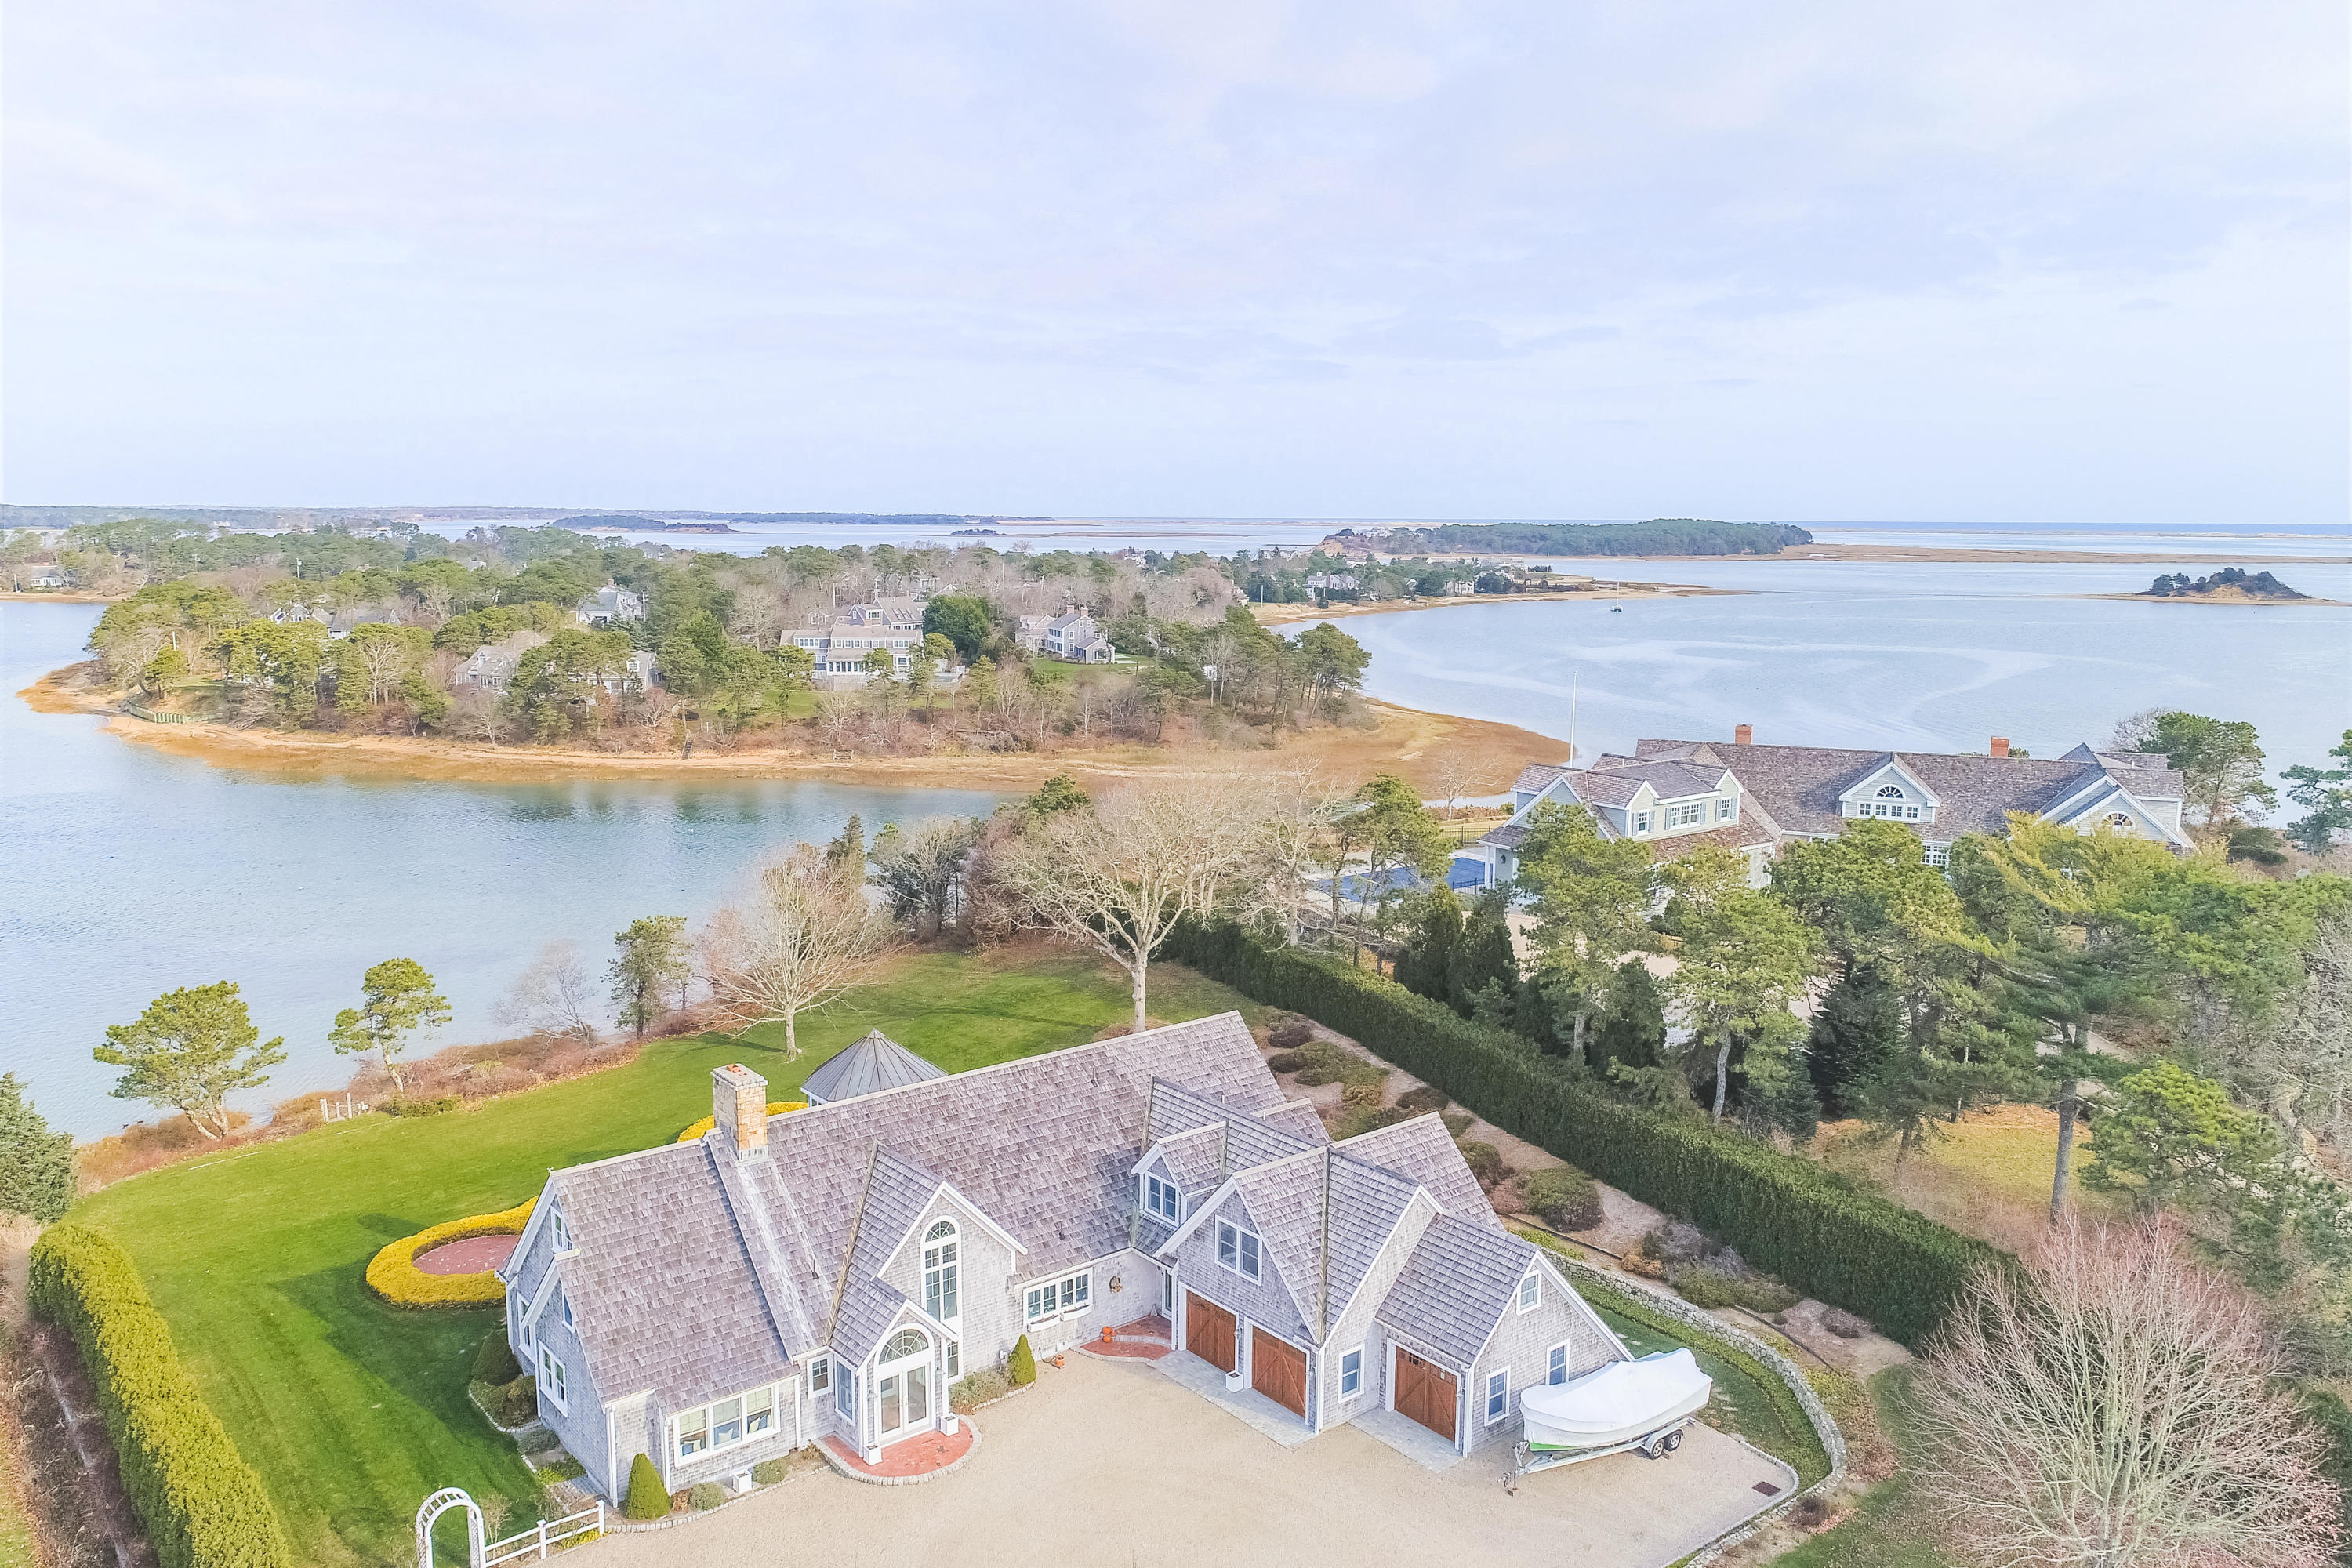 255 Seapine Road, North Chatham MA, 02650 sales details